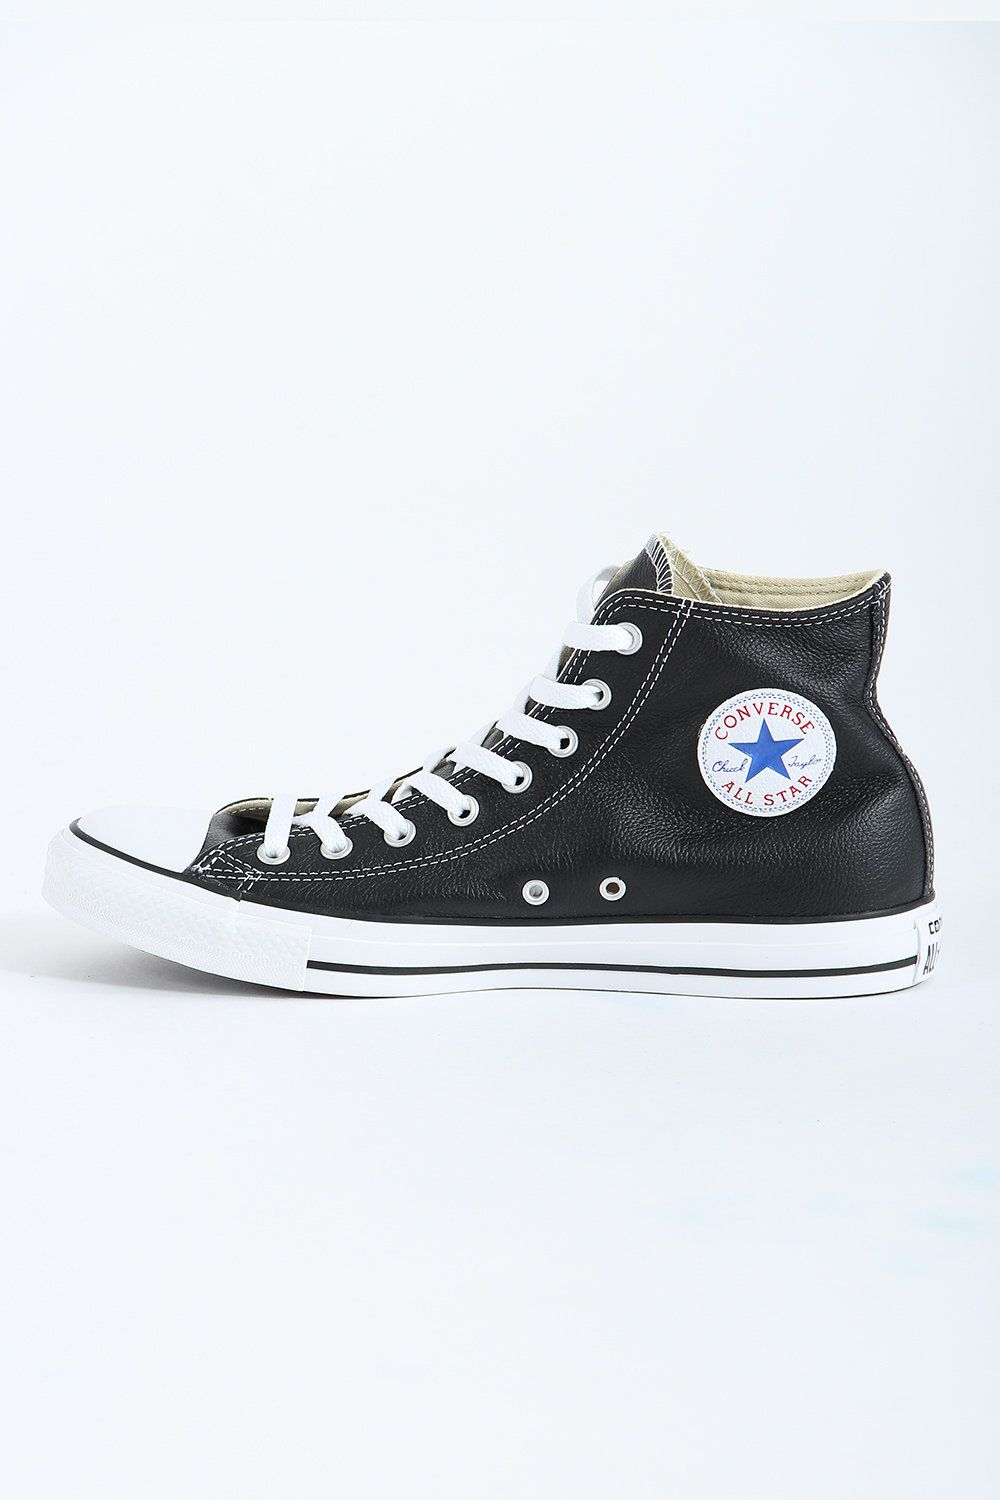 e01132eaa679c Converse Chuck Taylor All Star Hi Leather - Shoes